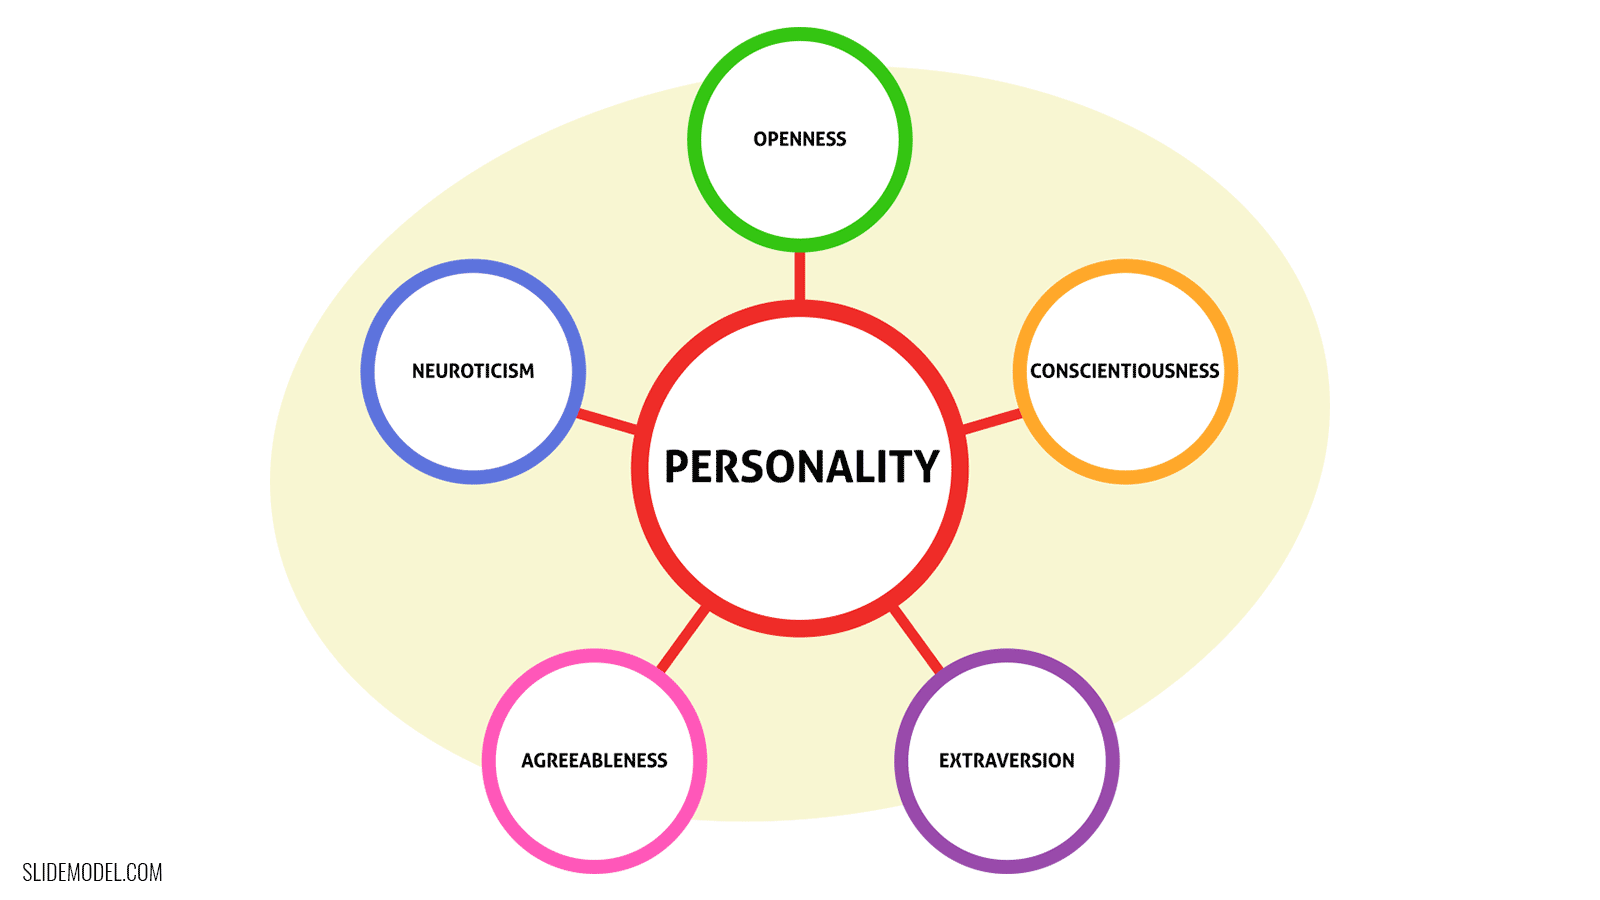 The Big Five Personality Traits Model